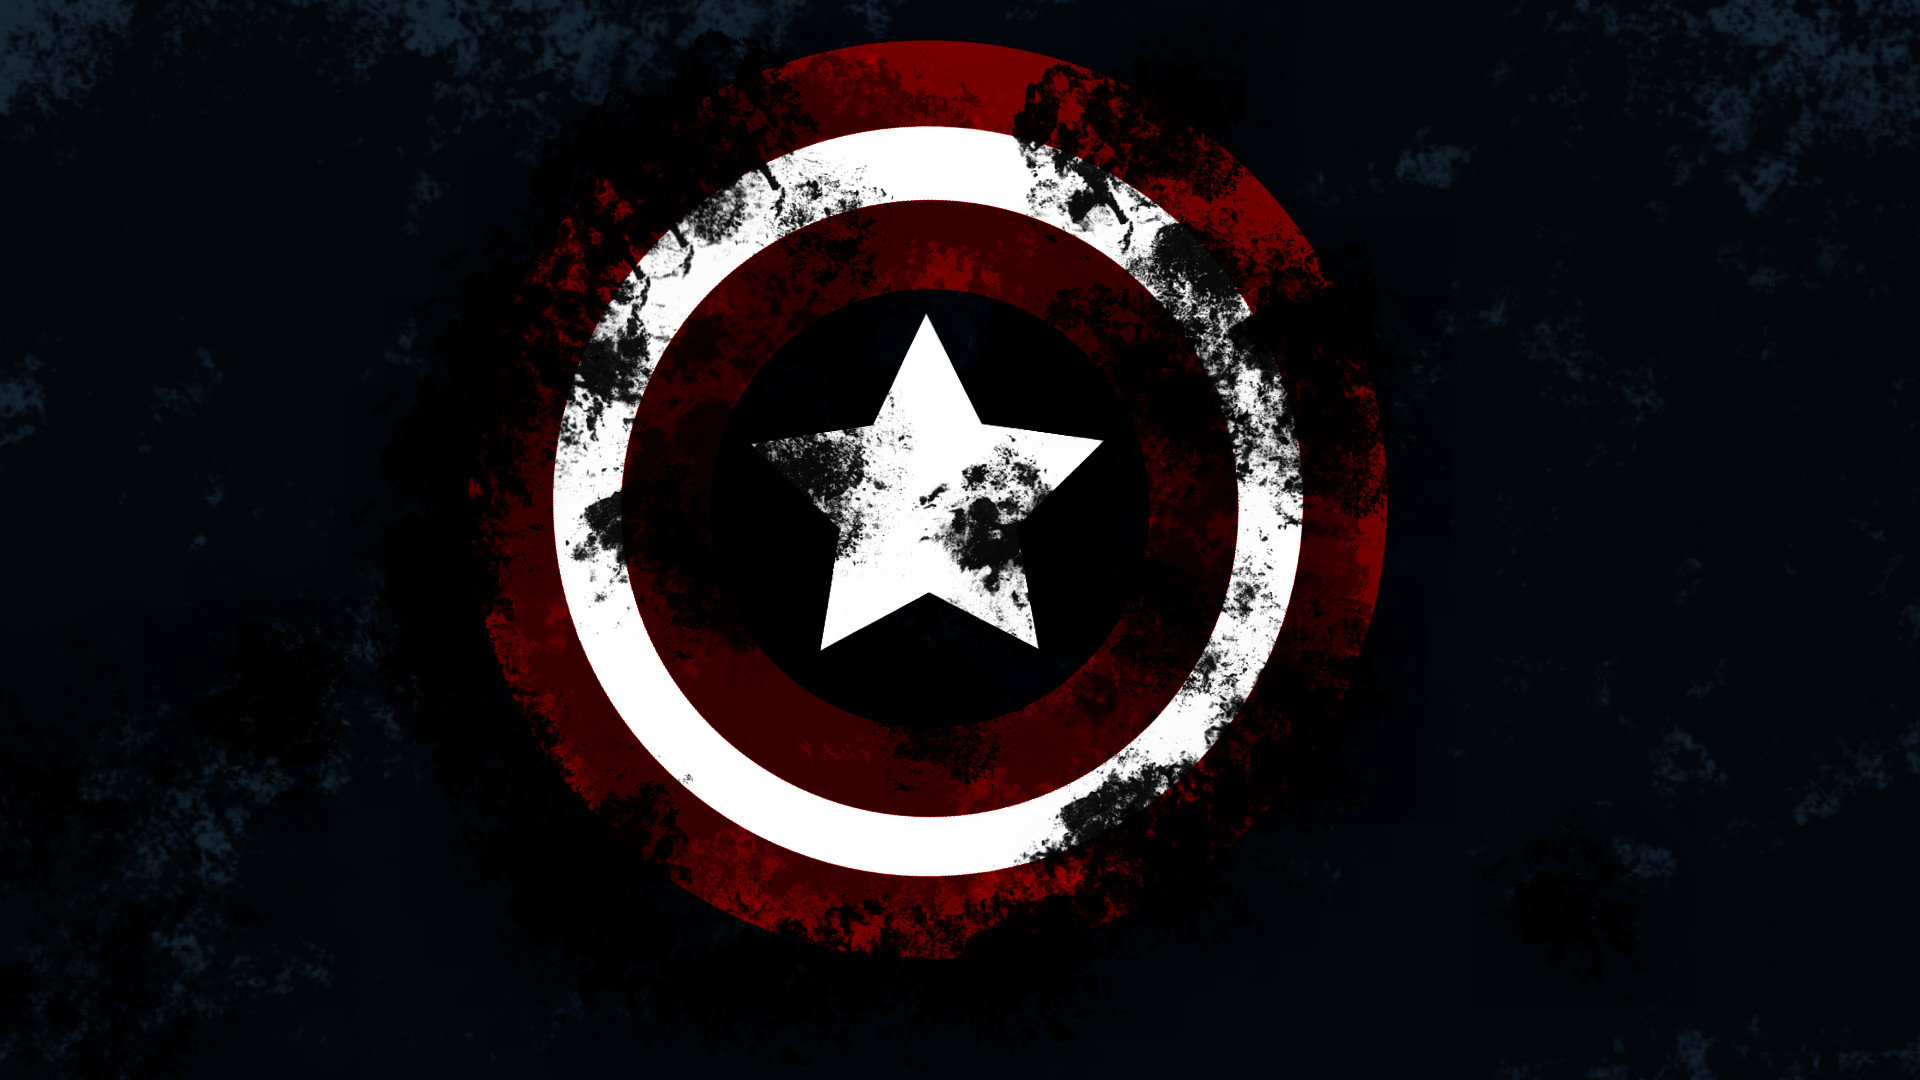 Download 1080p Captain America The First Avenger Desktop Wallpaper